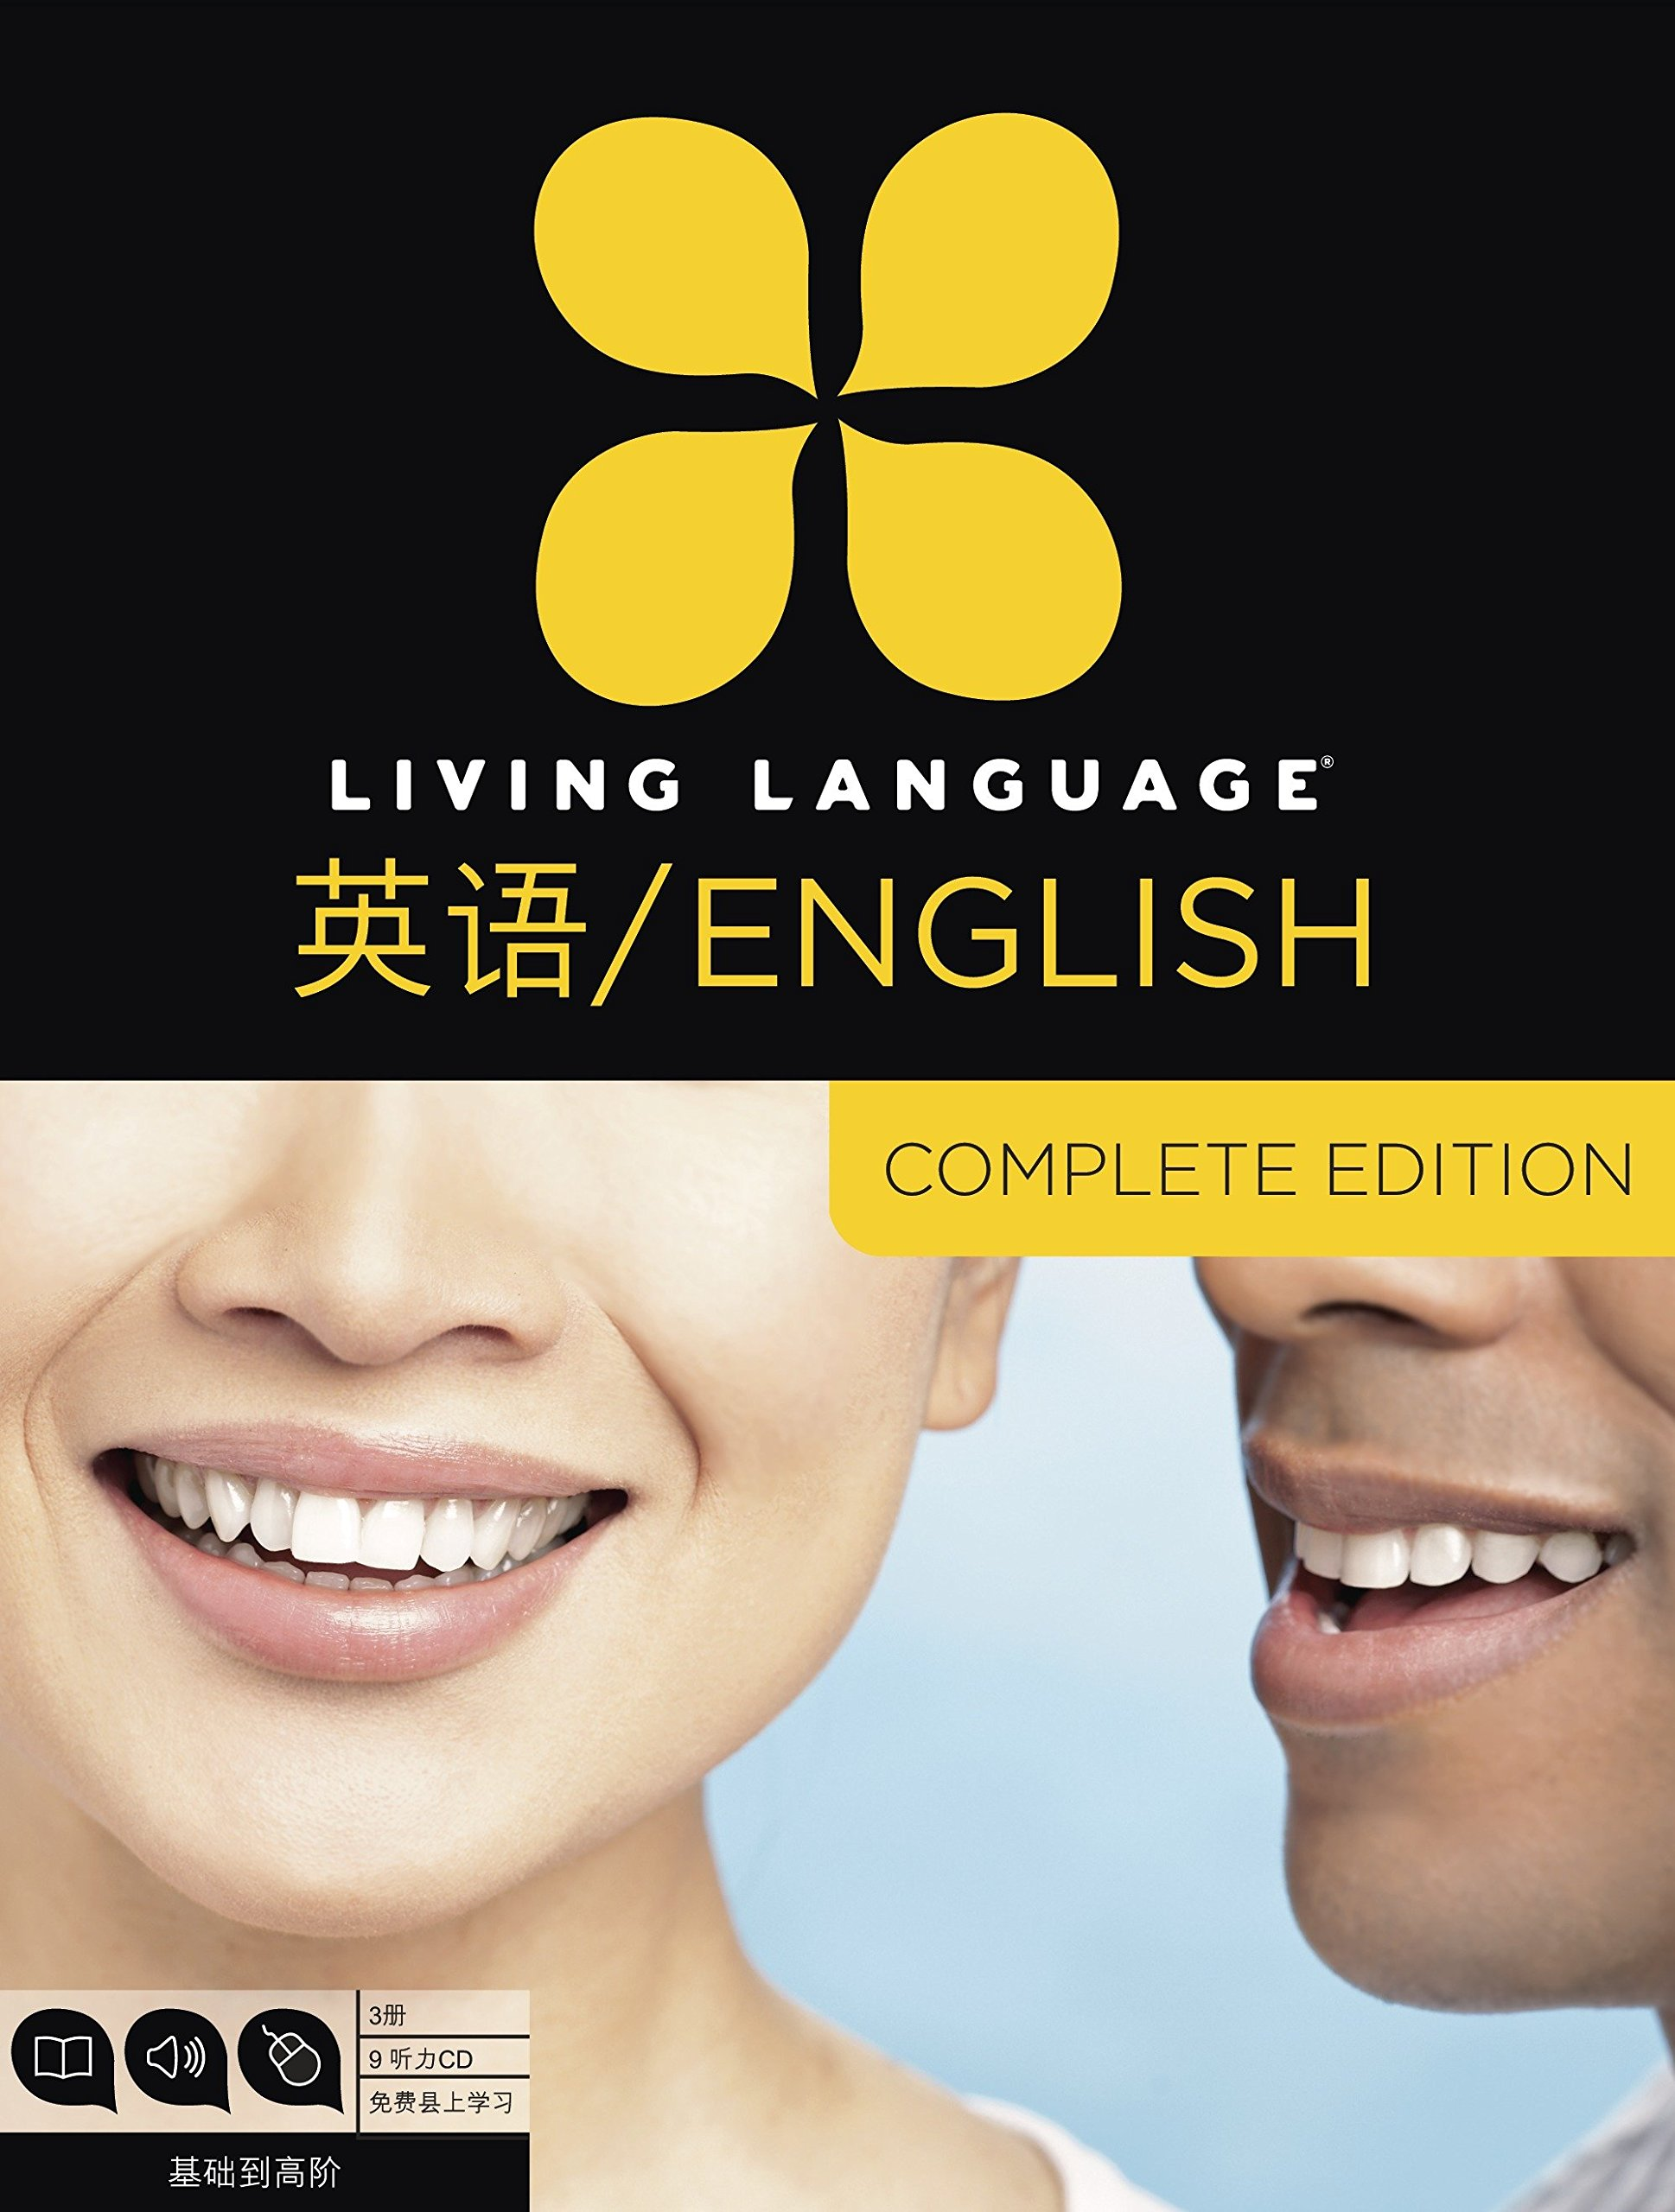 Living Language English for Chinese Speakers, Complete Edition (ESL/ELL): Beginner through advanced course, including 3 coursebooks, 9 audio CDs, and free online learning